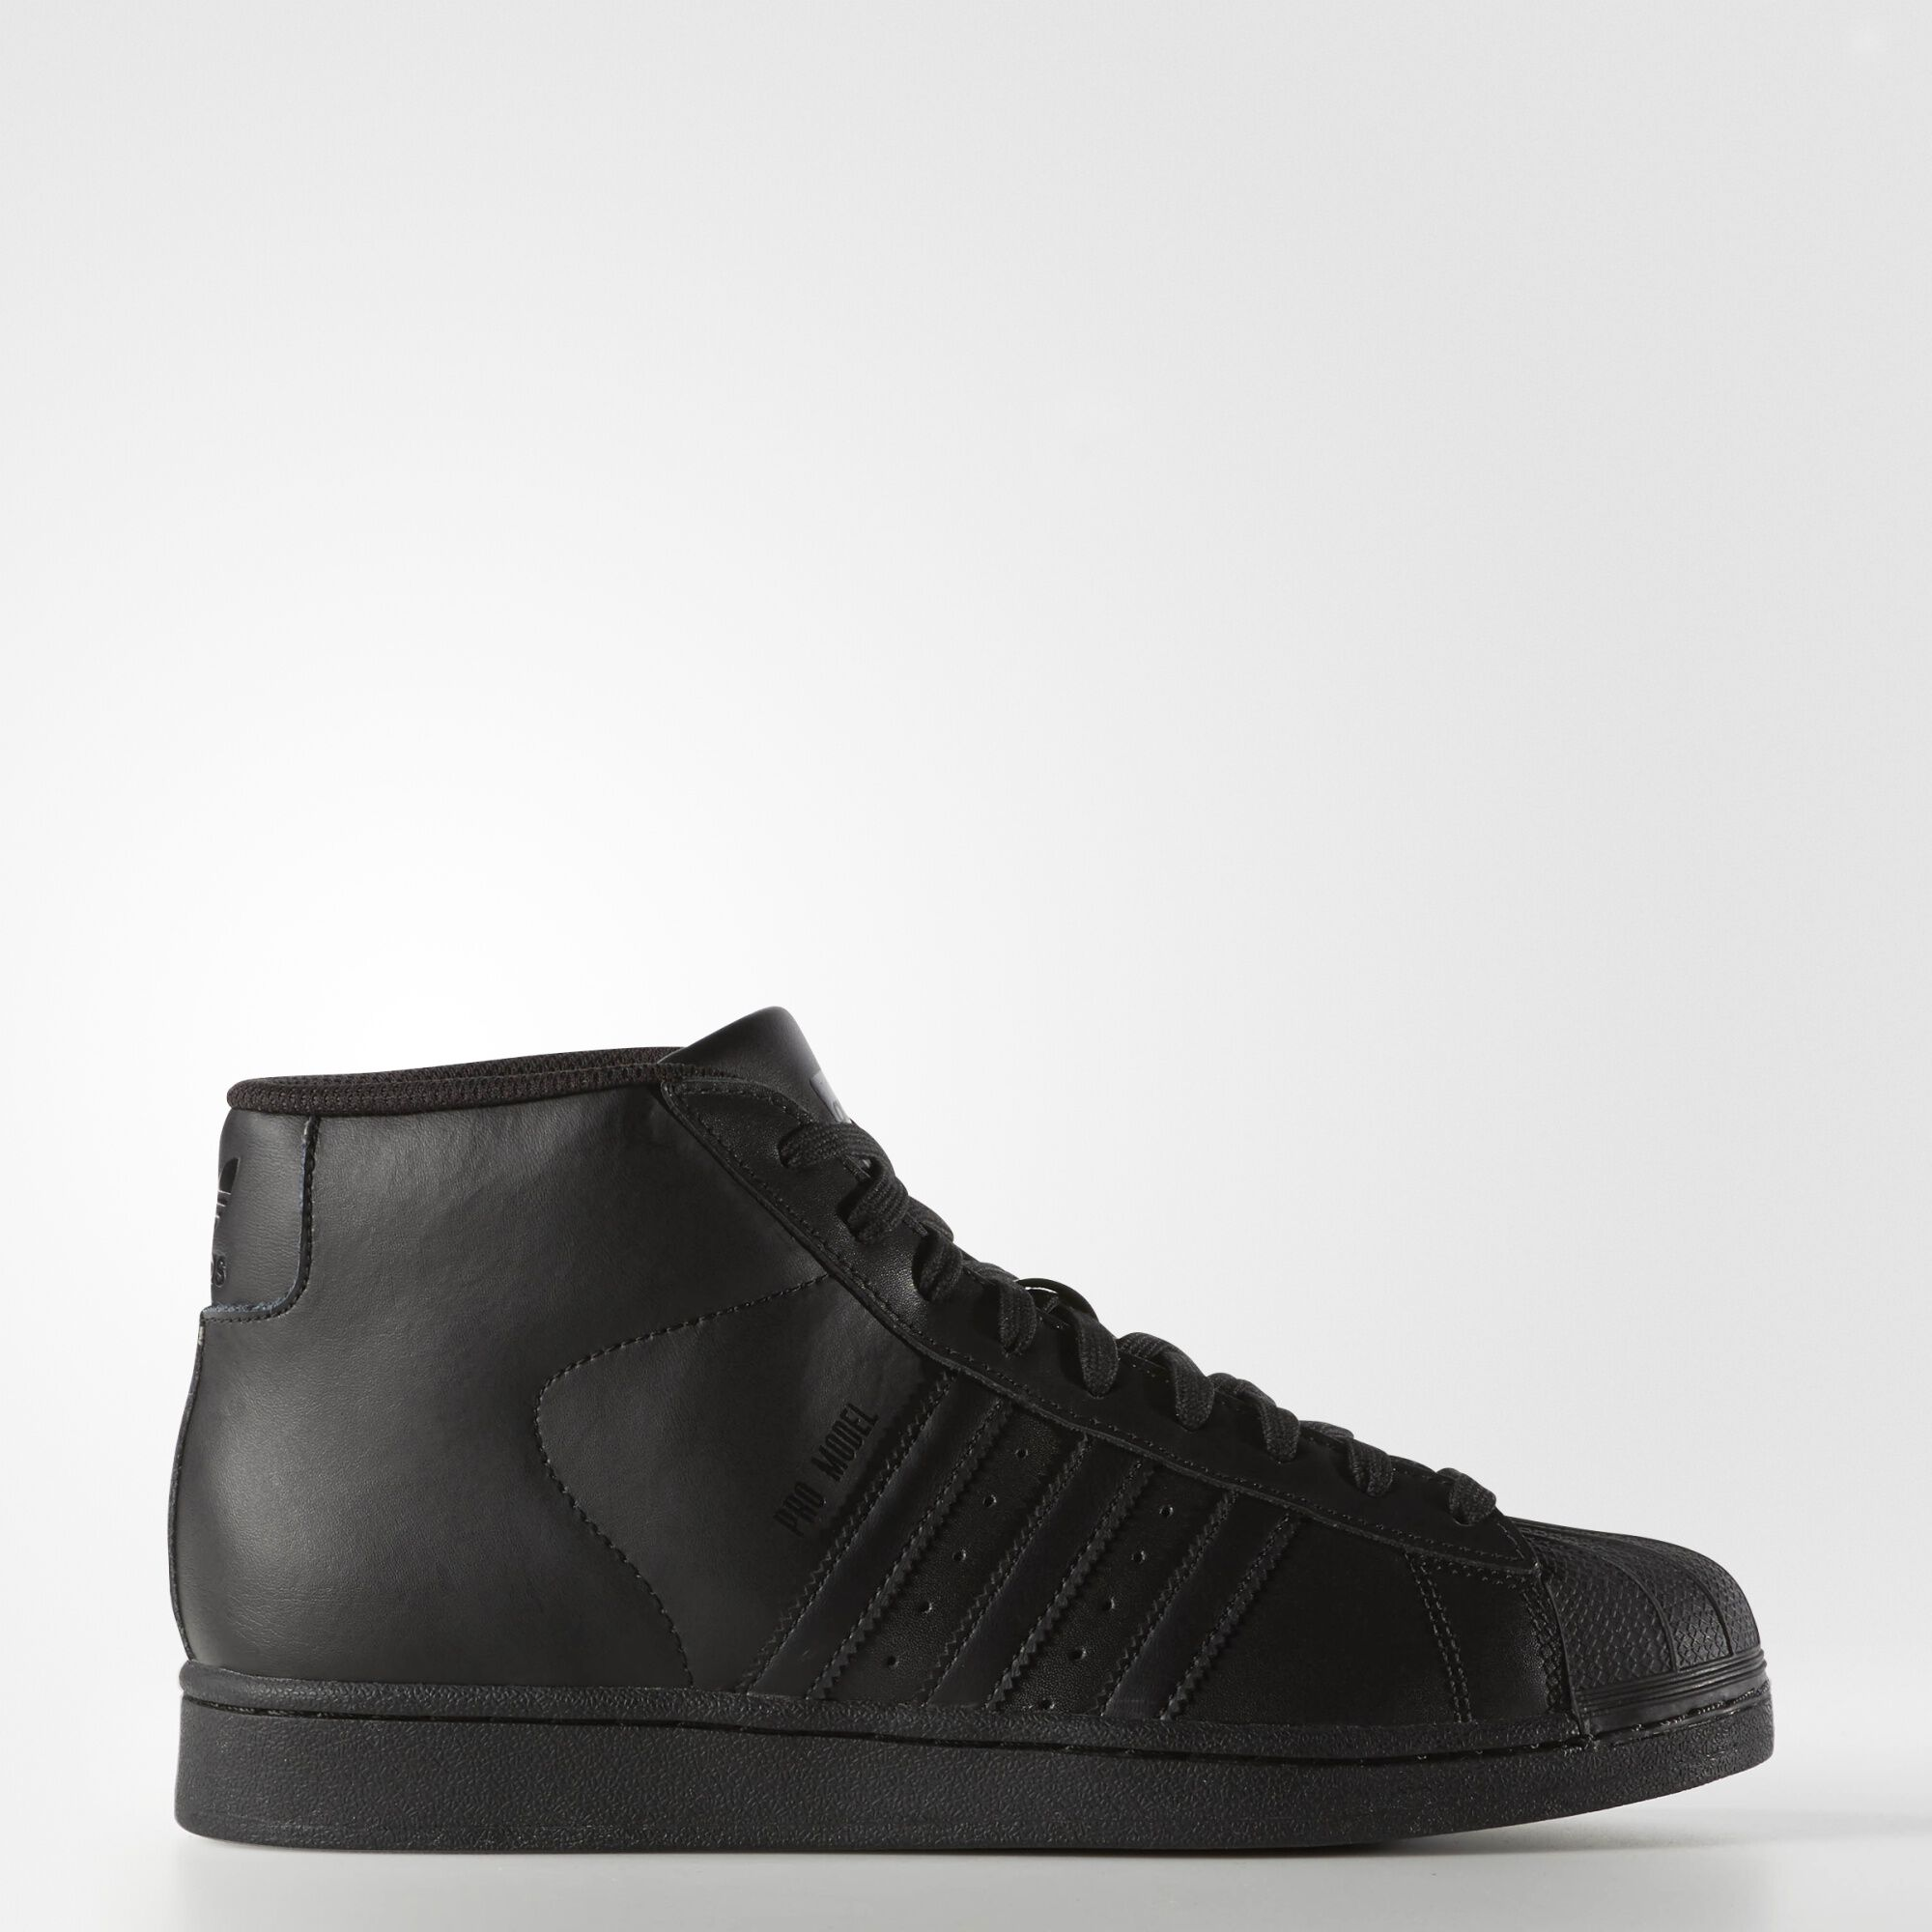 adidas superstar pro model hi